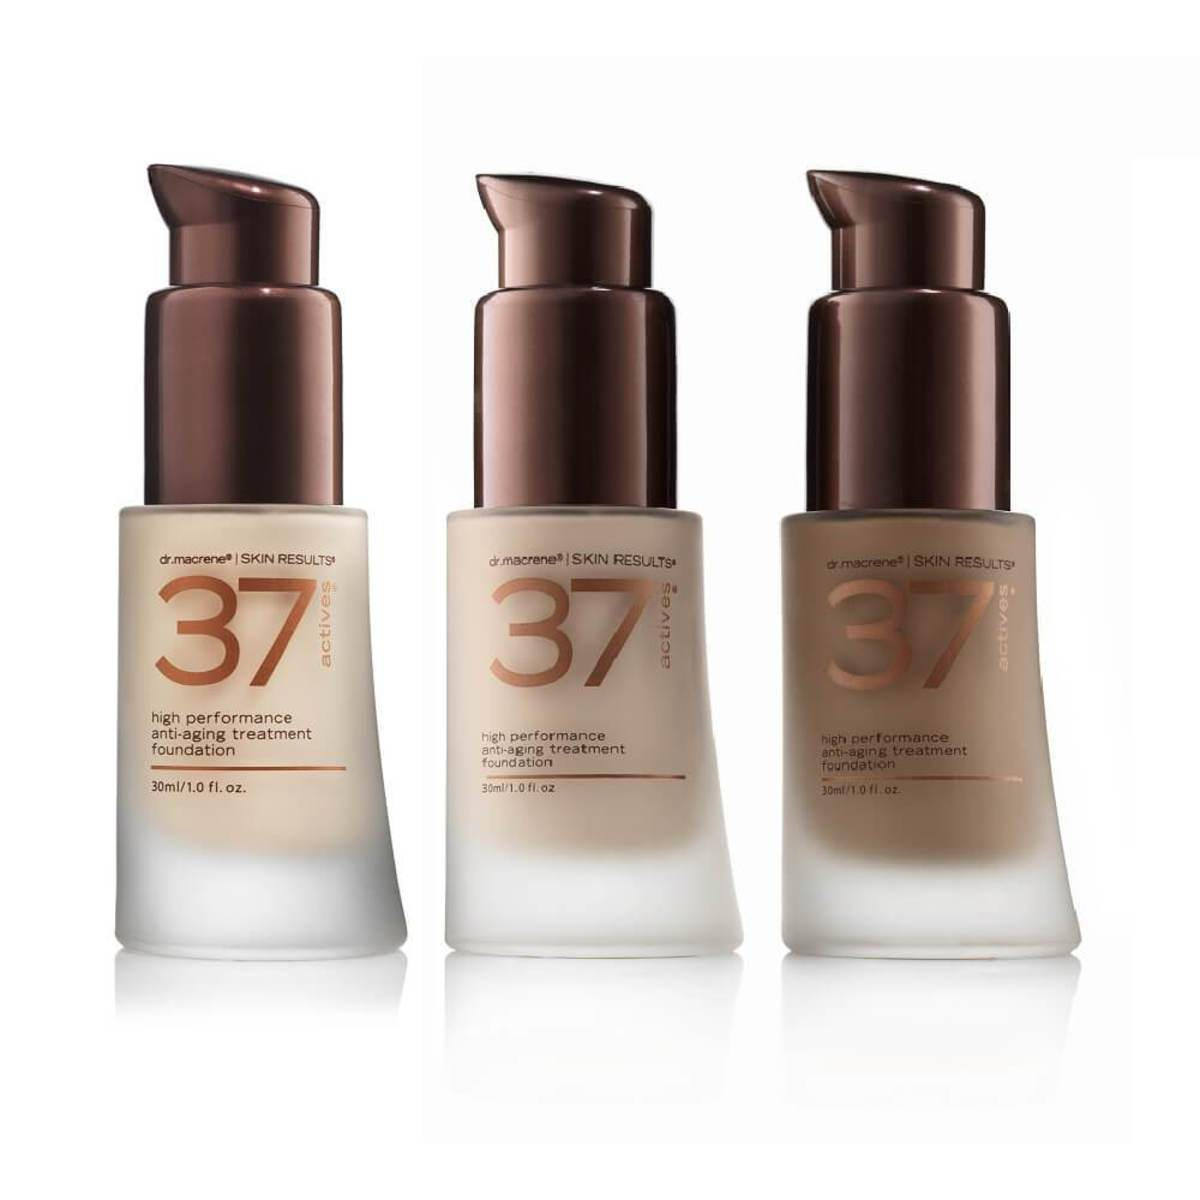 High_Performance_Anti-Aging_Treatment_Foundation_1024x1024